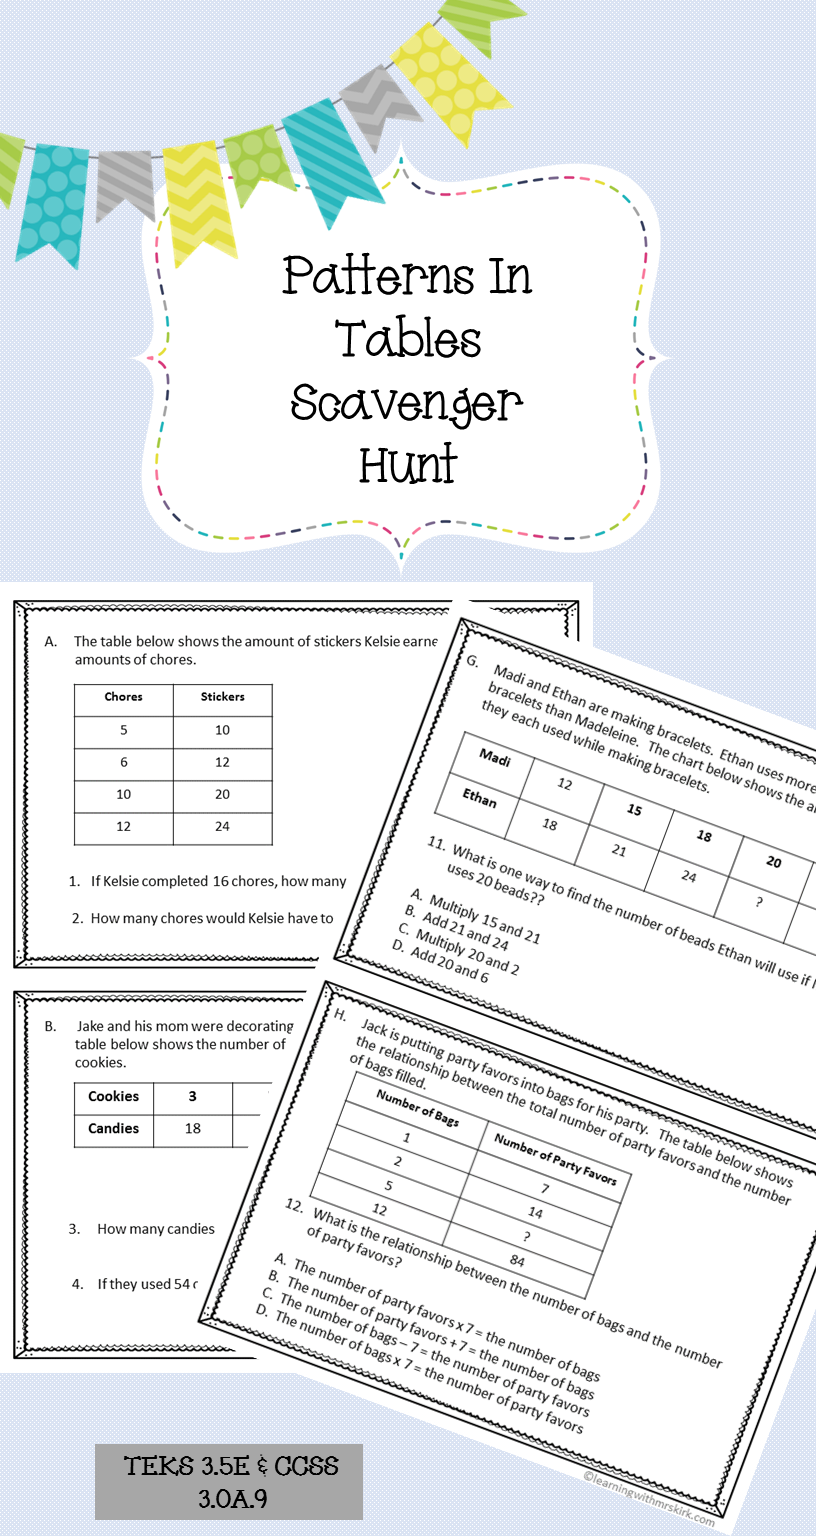 Patterns in Tables Scavenger Hunt | Learning, Elementary math and Maths